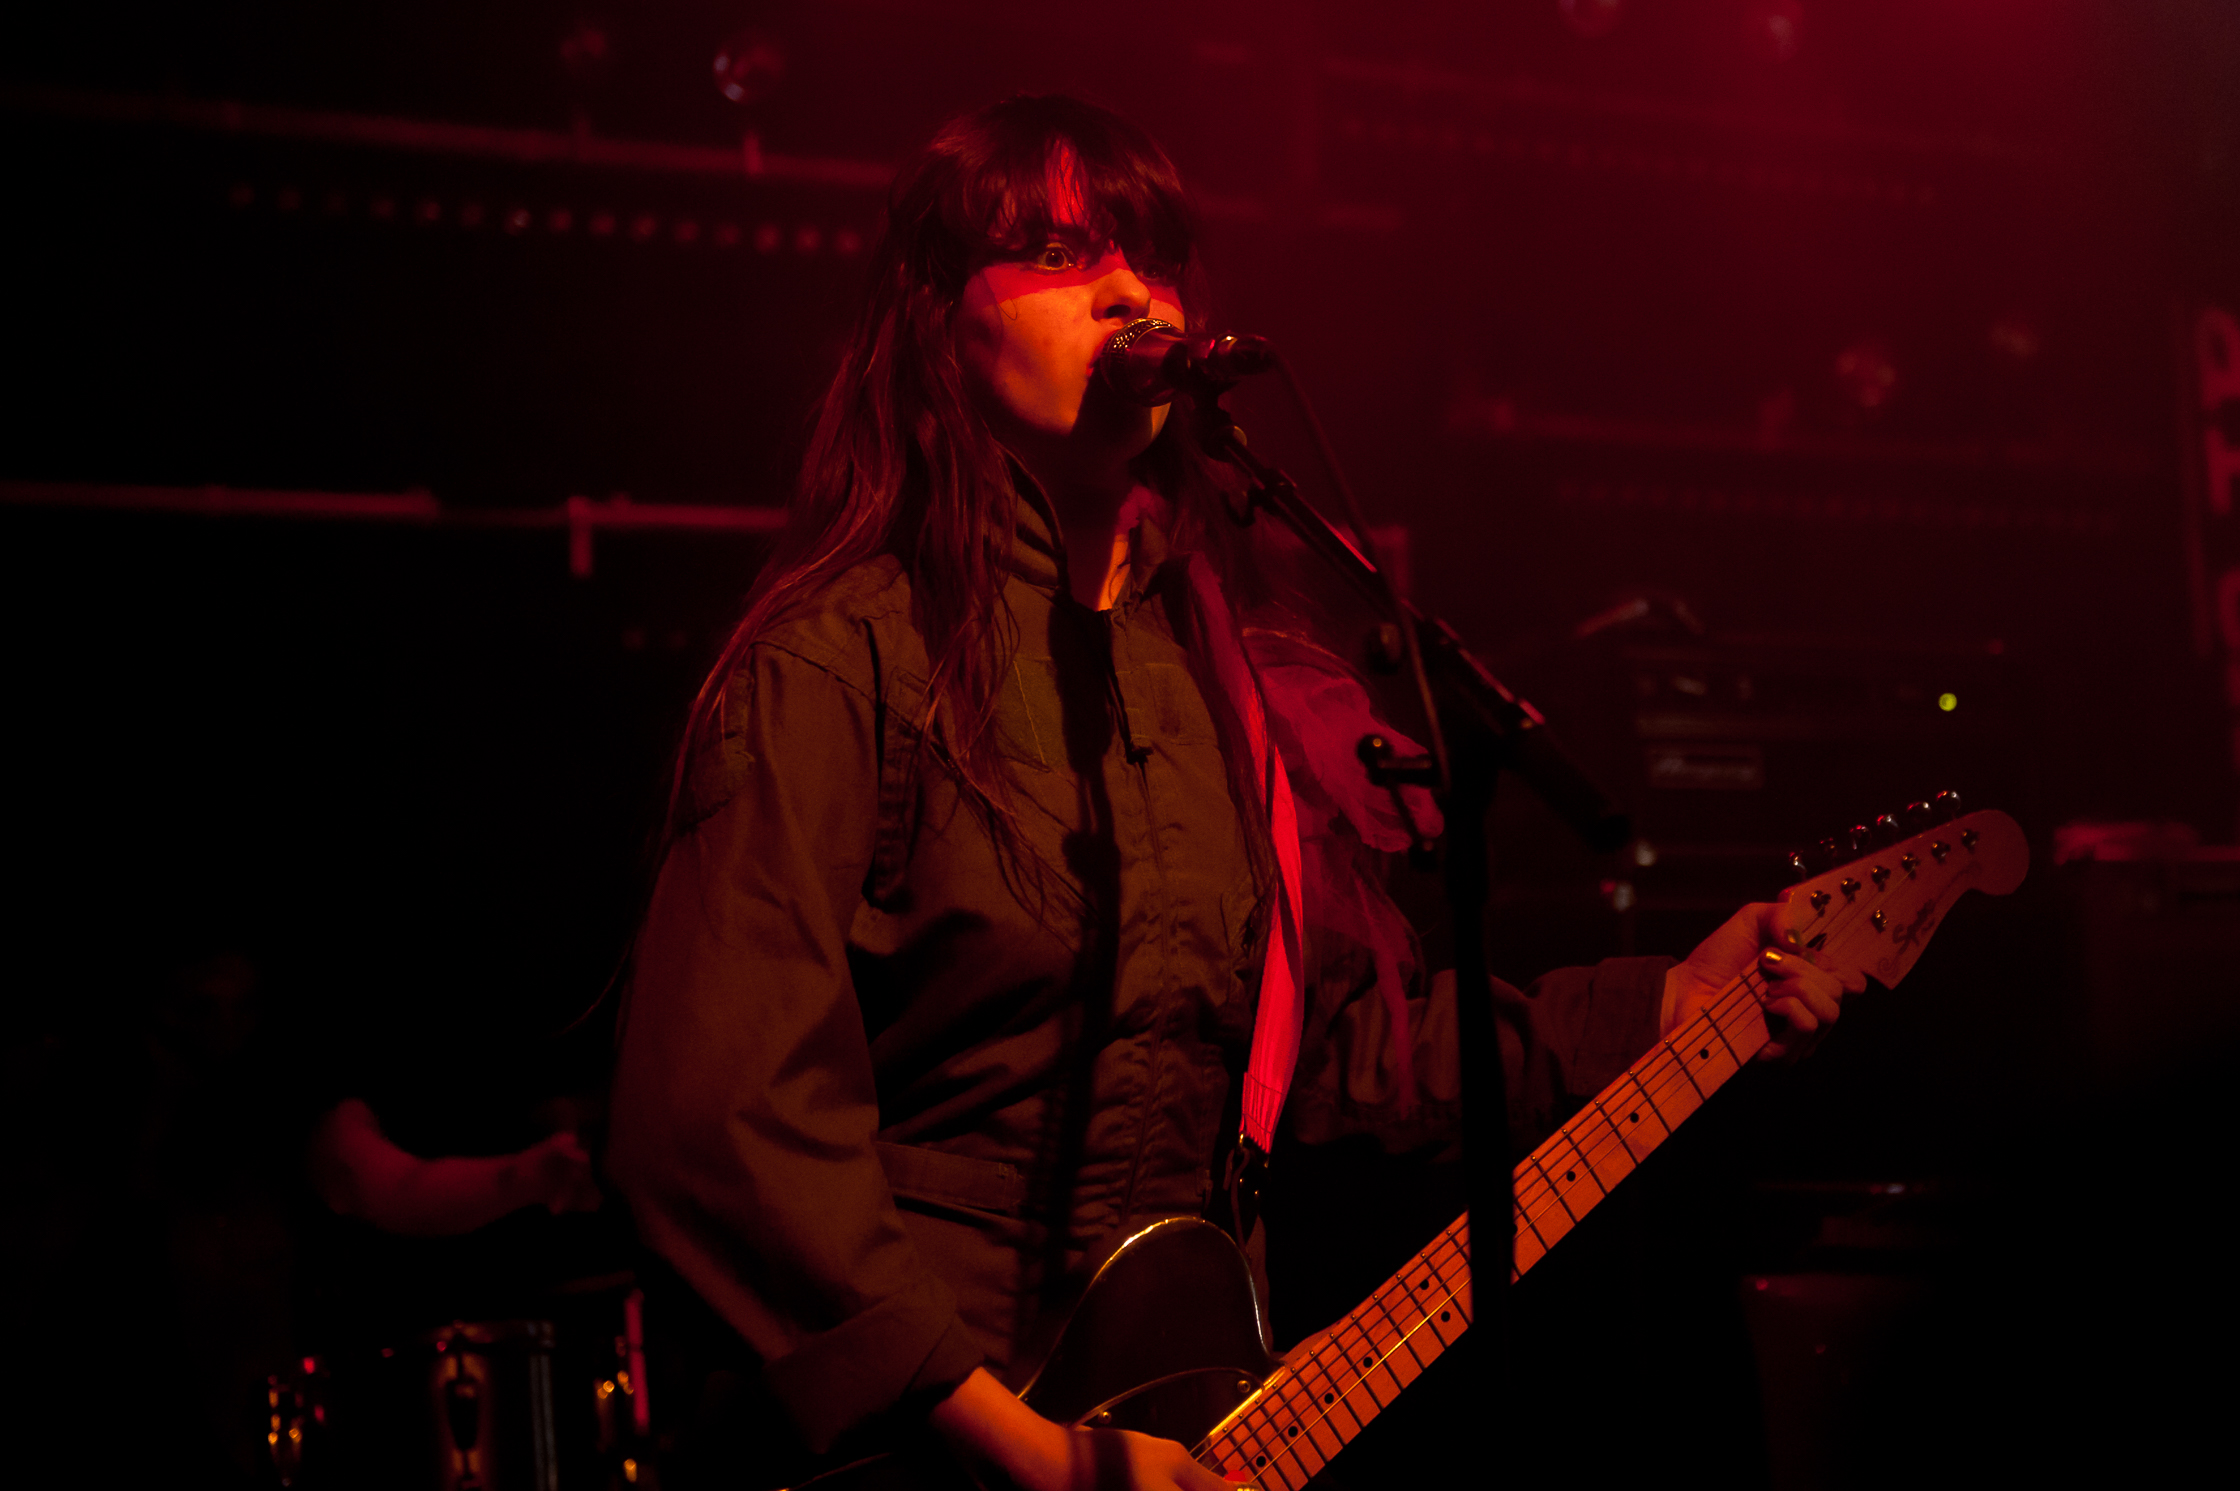 2016_09_23_arteather_lebutcherettes-1201